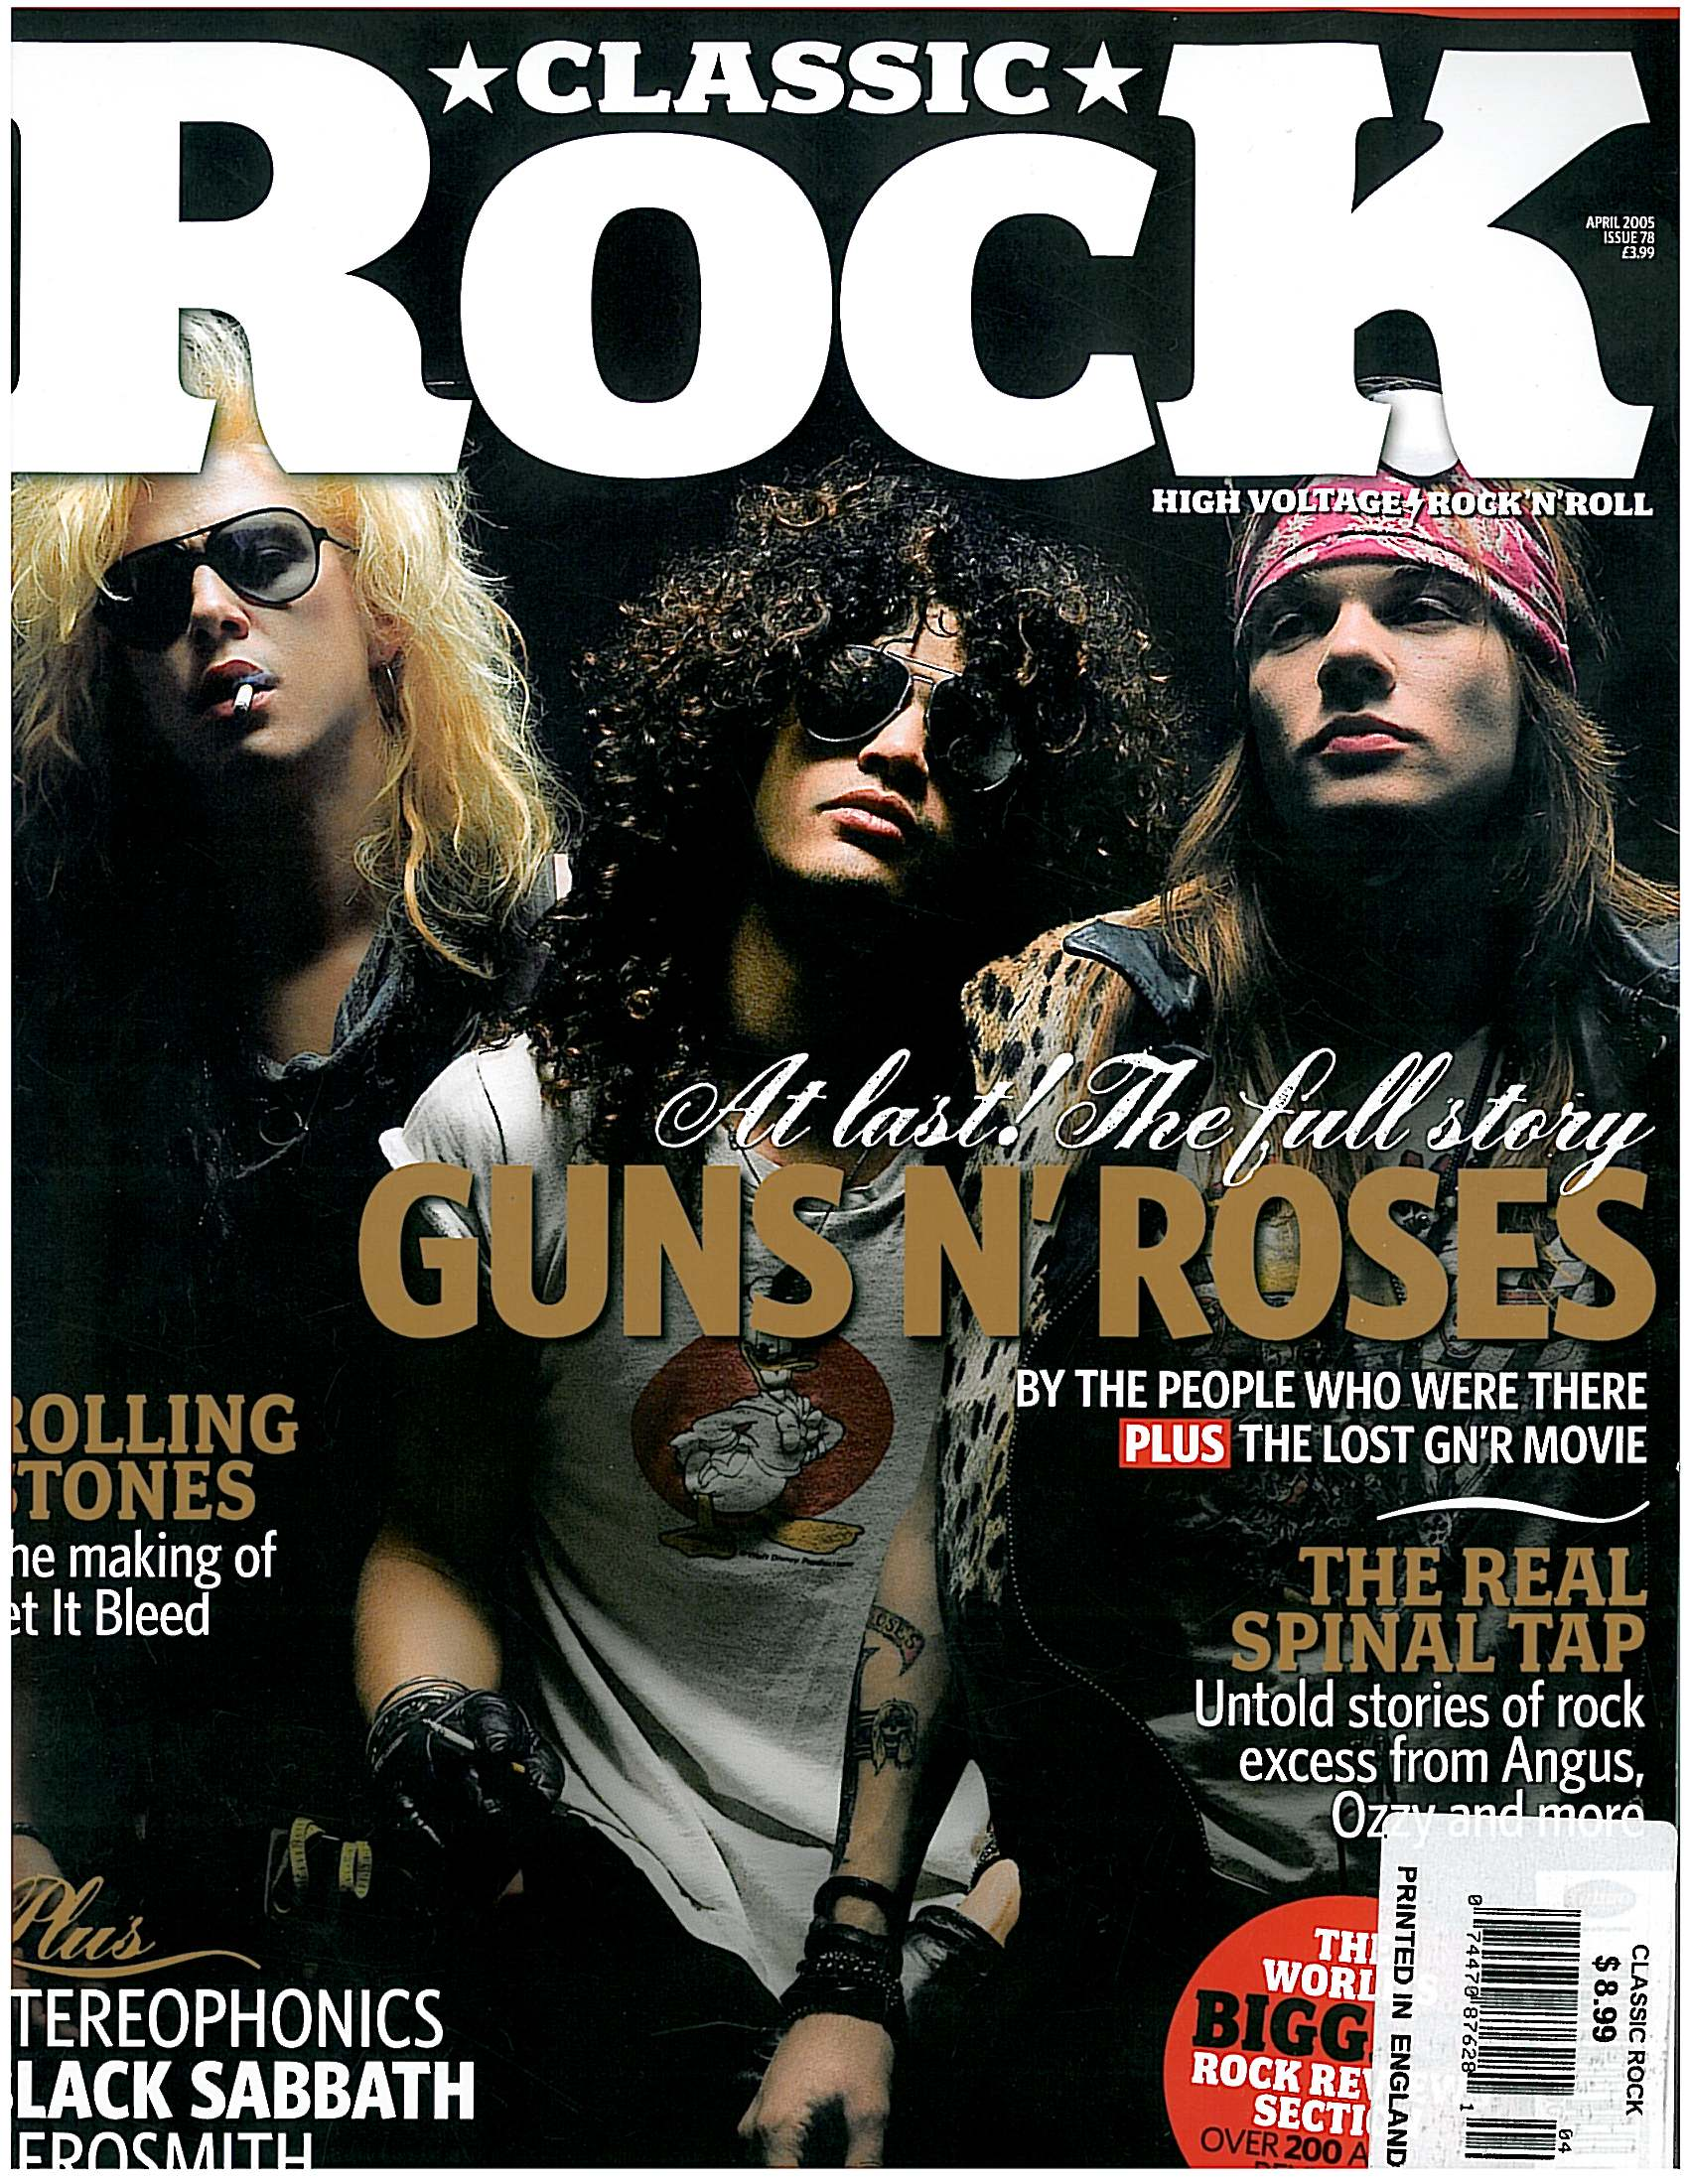 2005.04.XX - Quotes from Duff, Steven and Slash in Classic Rock Magazine JKlgjgei_o